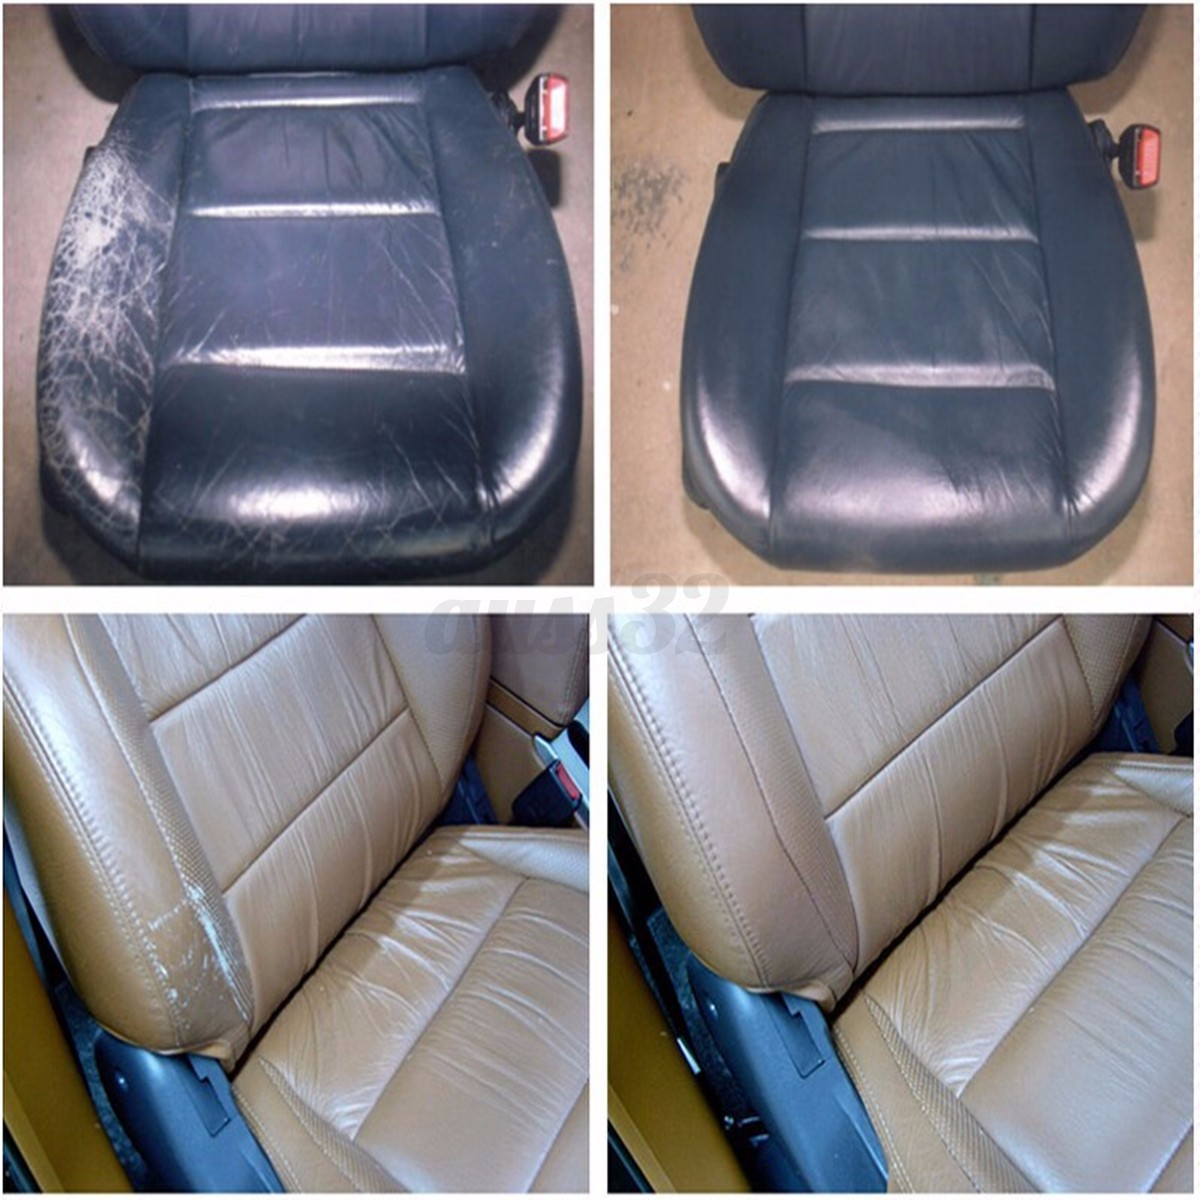 Leather Car Seat Cleaner Uk